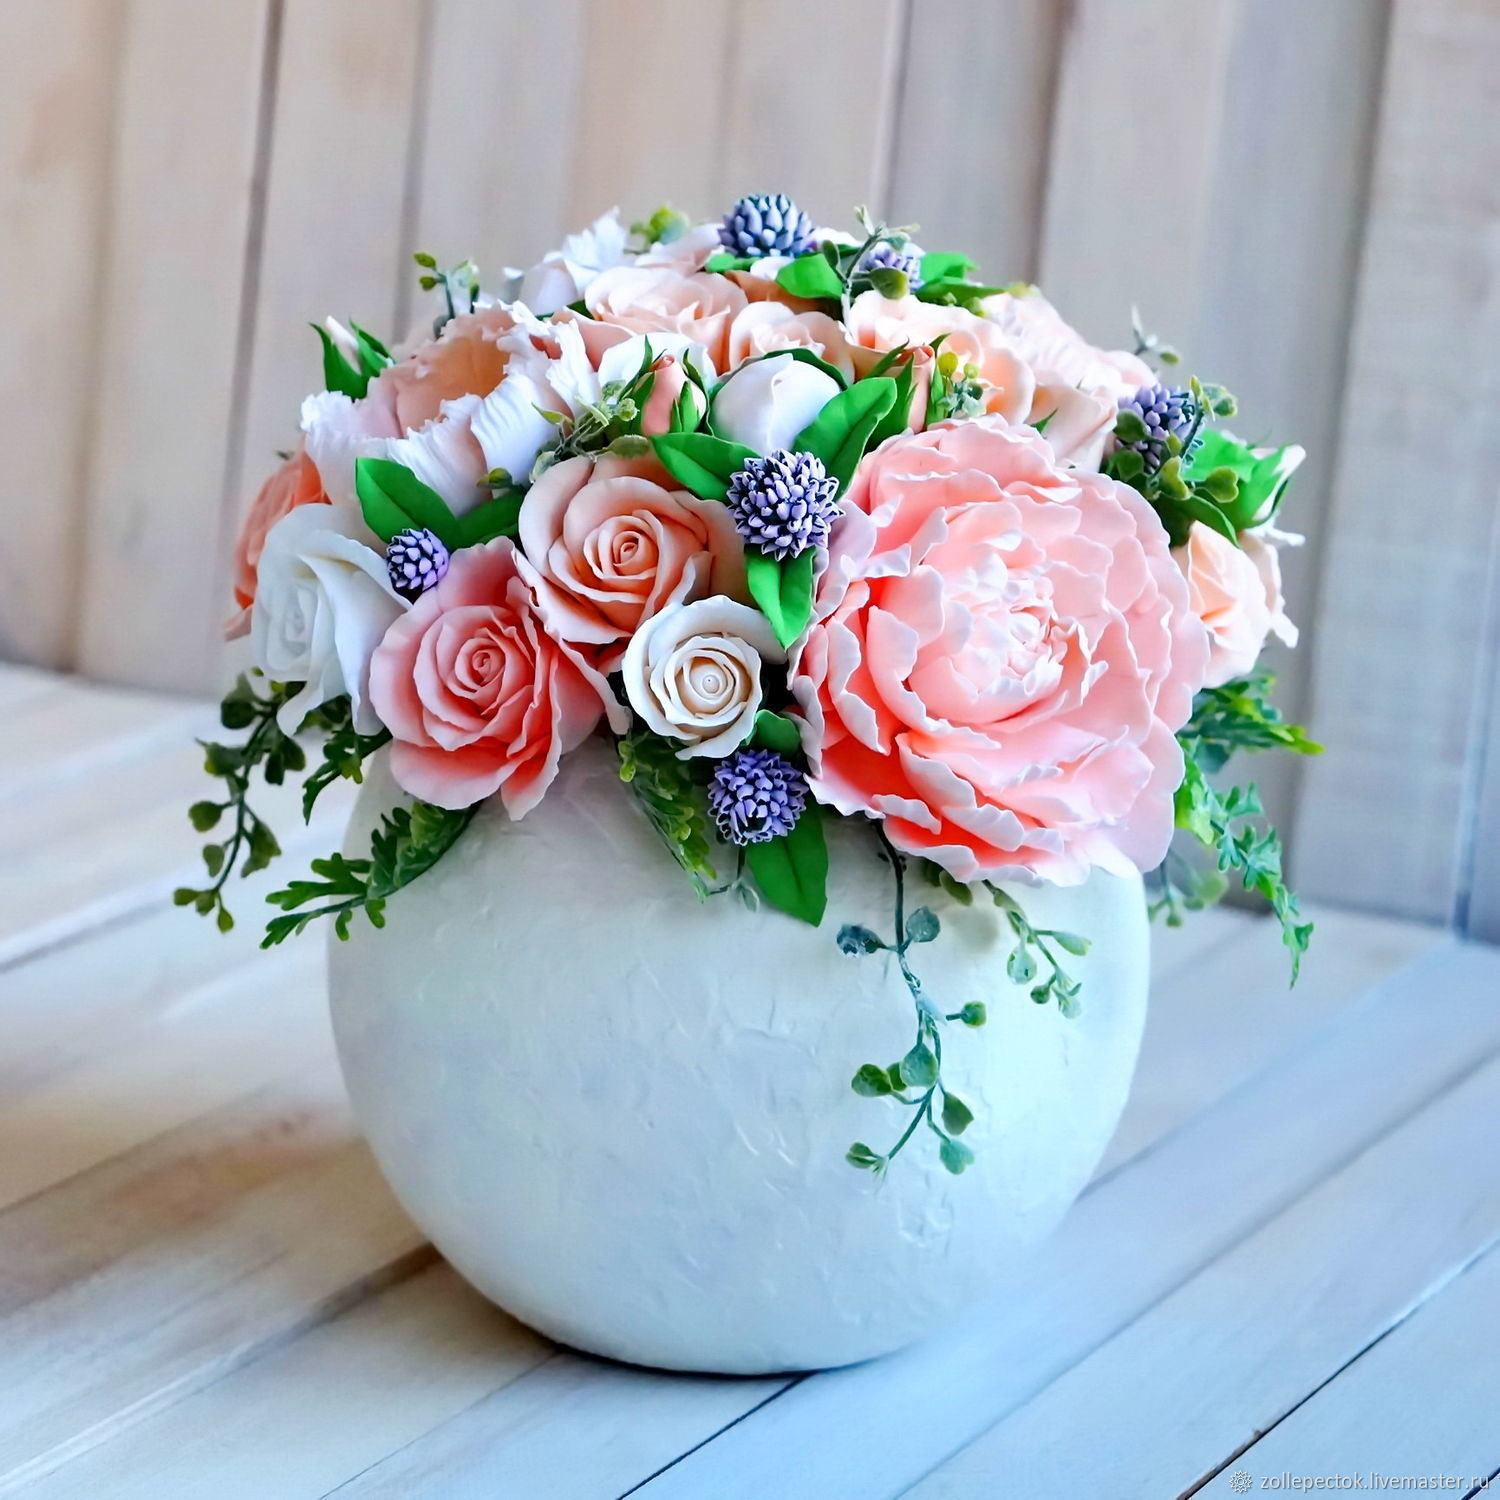 Flowers in a bowl shop online on livemaster with shipping florist arrangements handmade livemaster handmade buy flowers in a bowl izmirmasajfo